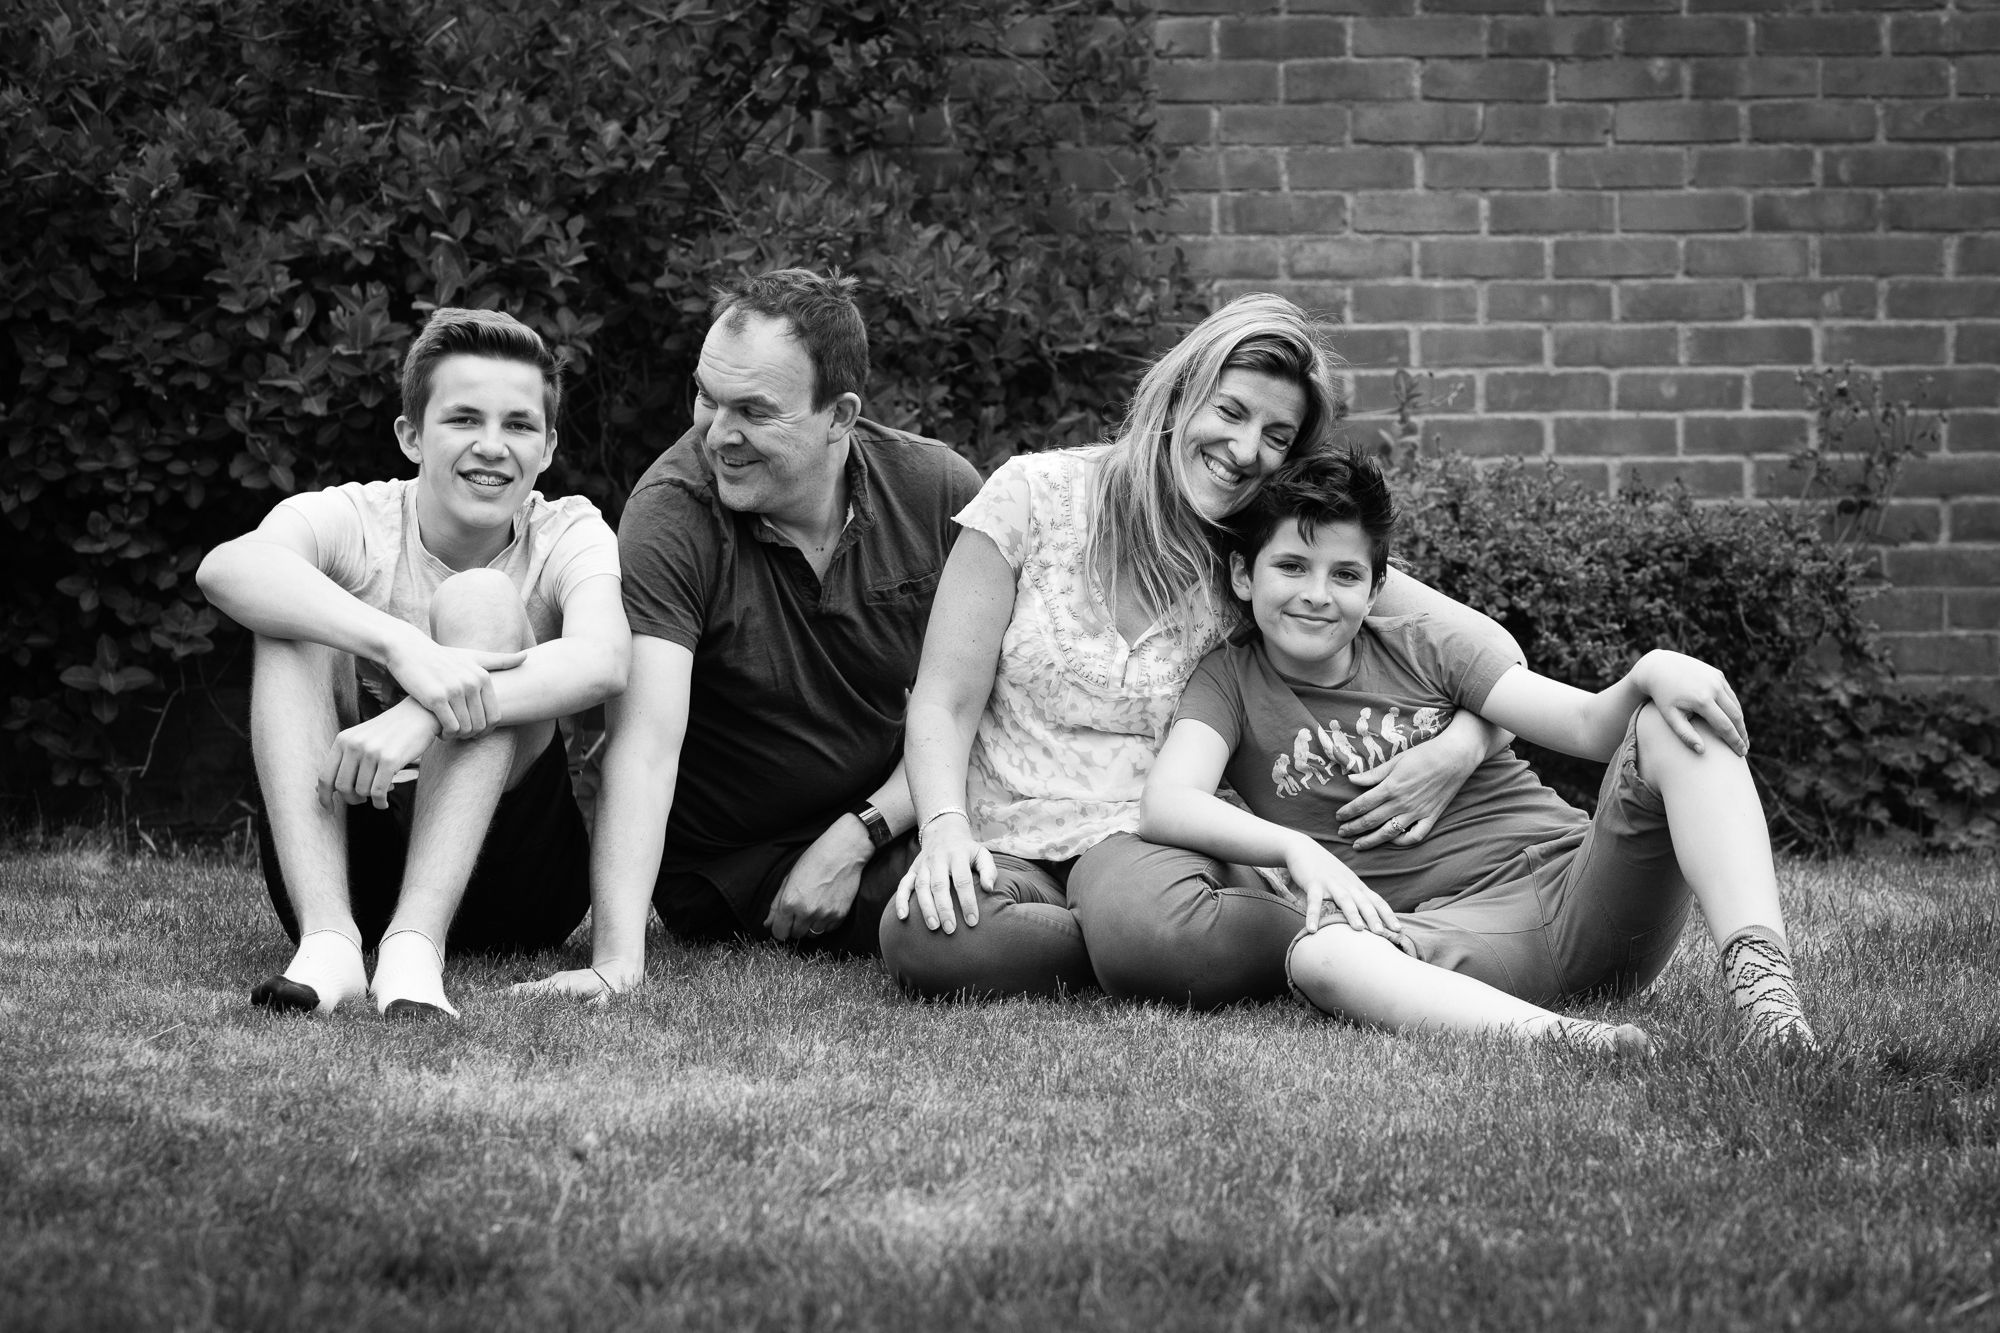 Alice_Chapman_Photography_Cambourne_Family-11.jpg